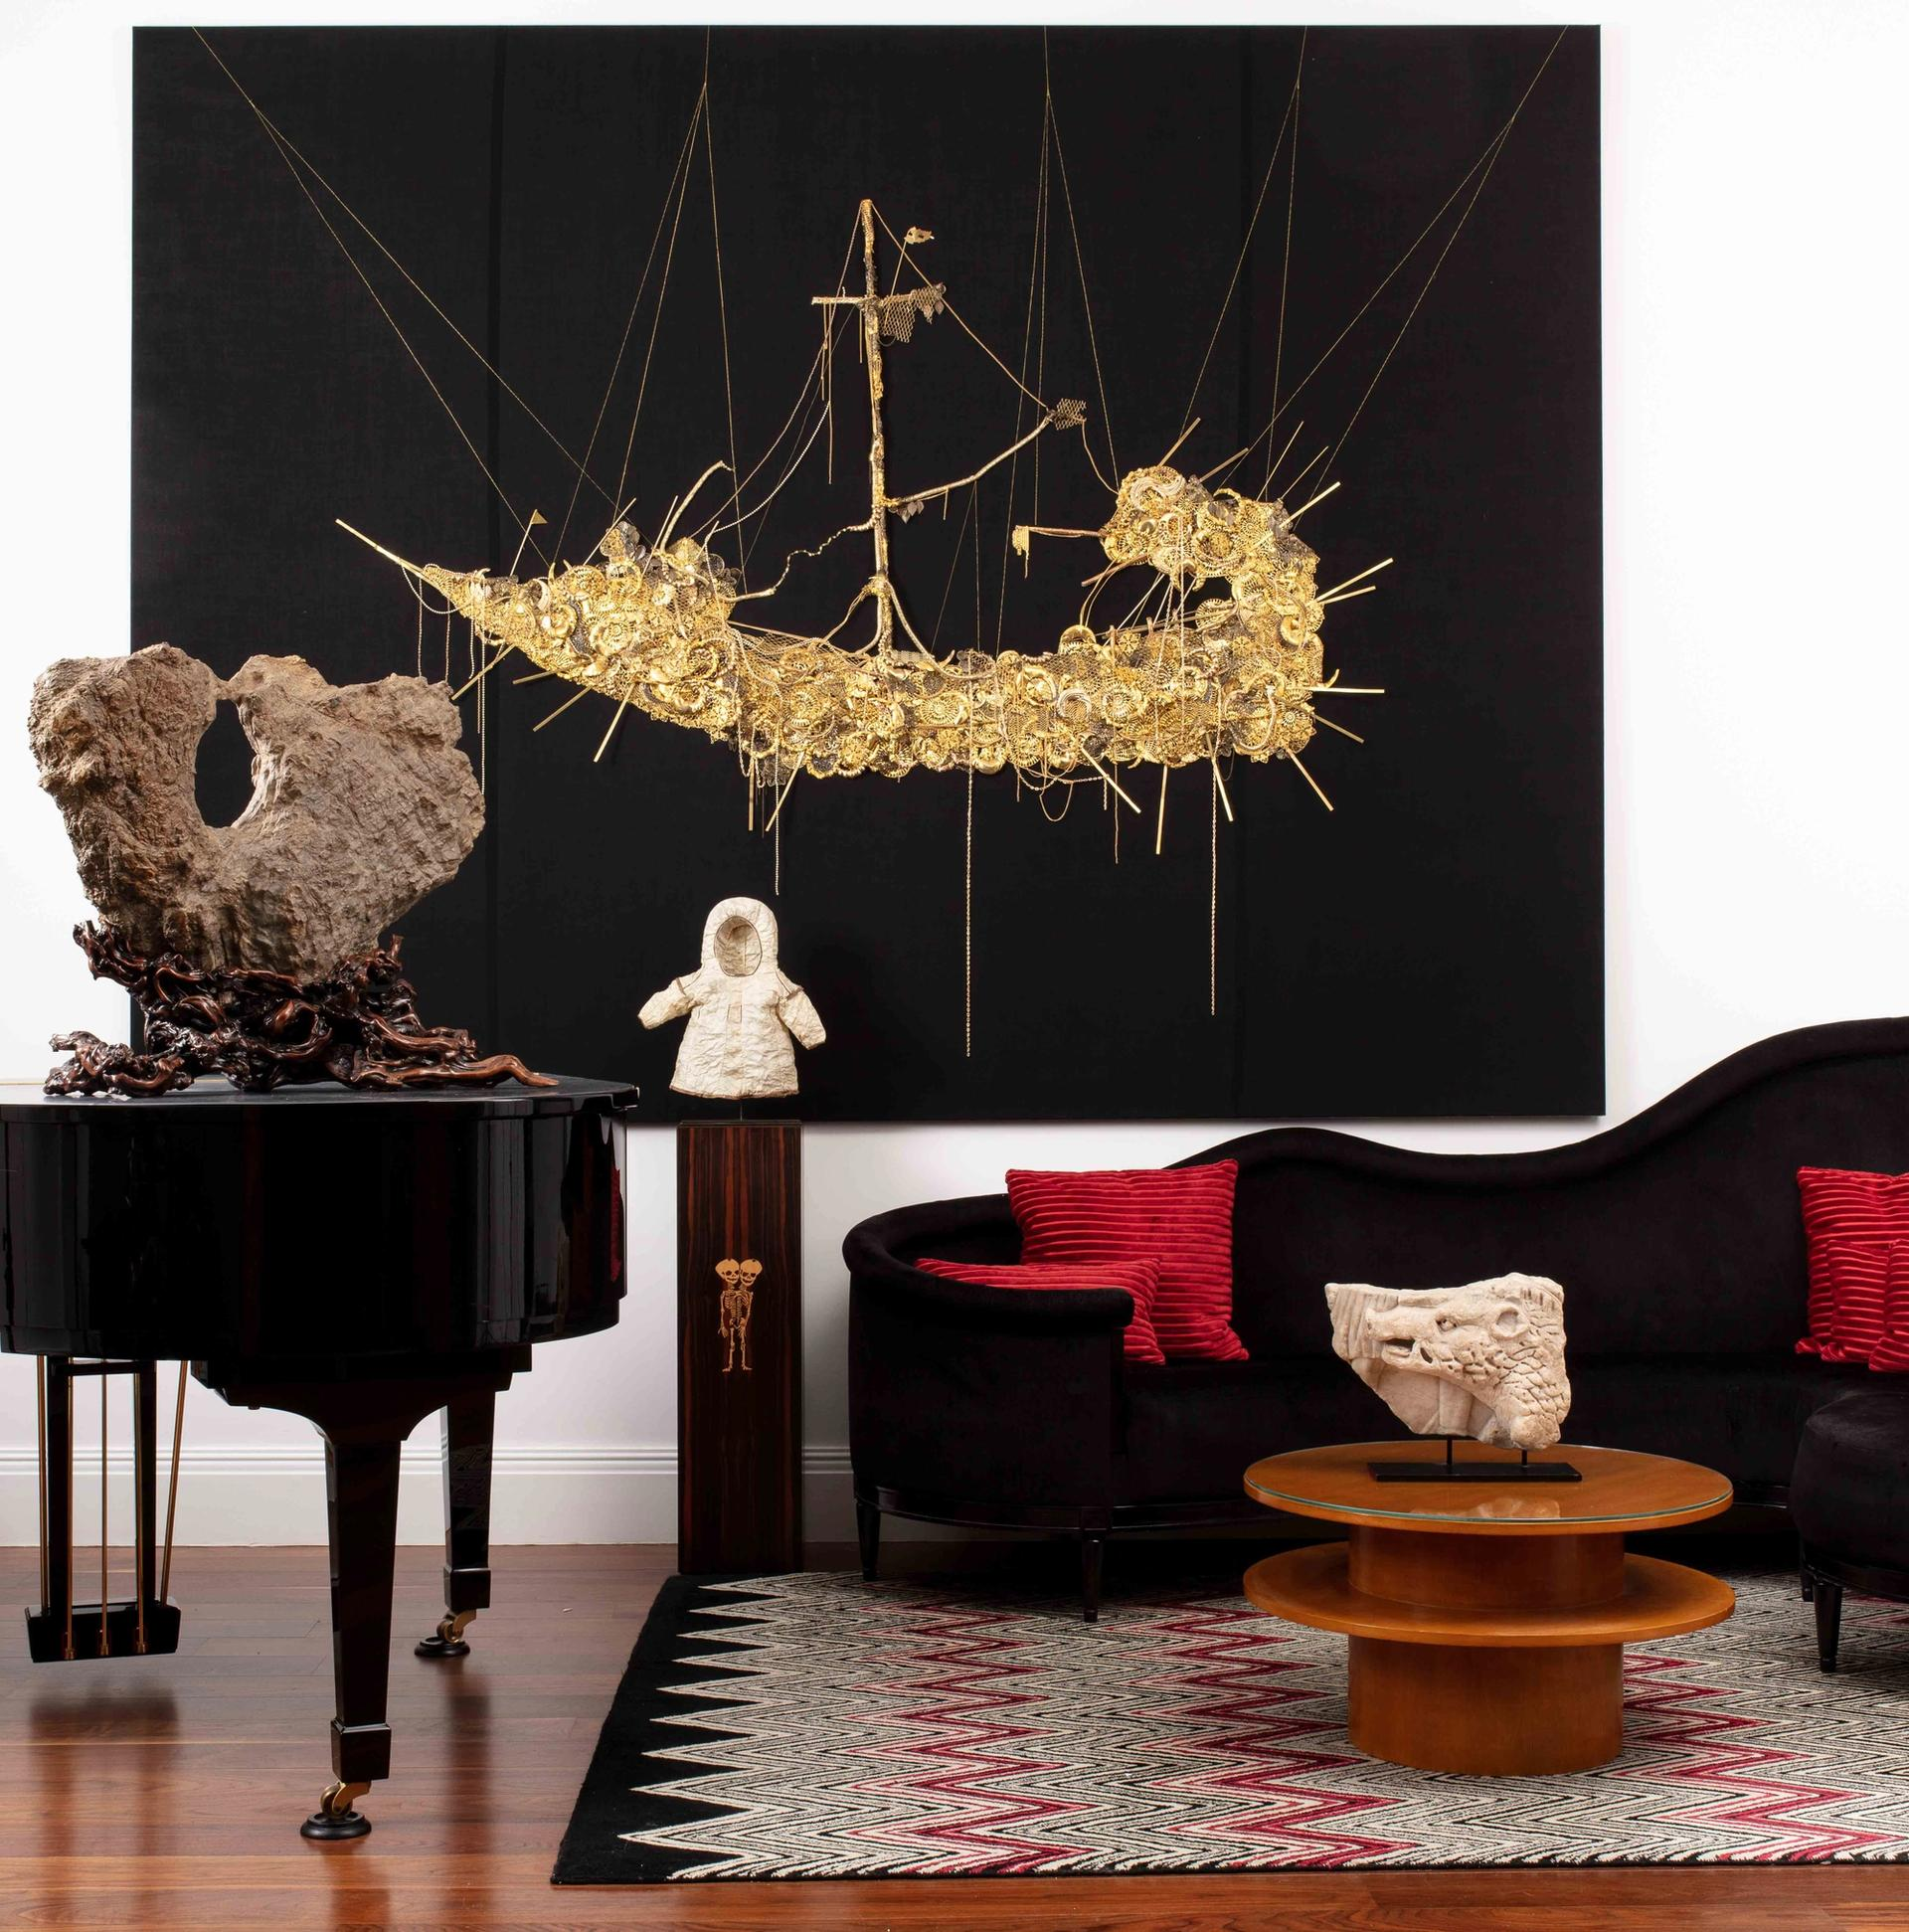 A work by Hew Locke alongside other items from the Peter Petrou sale Courtesy of Sotheby's